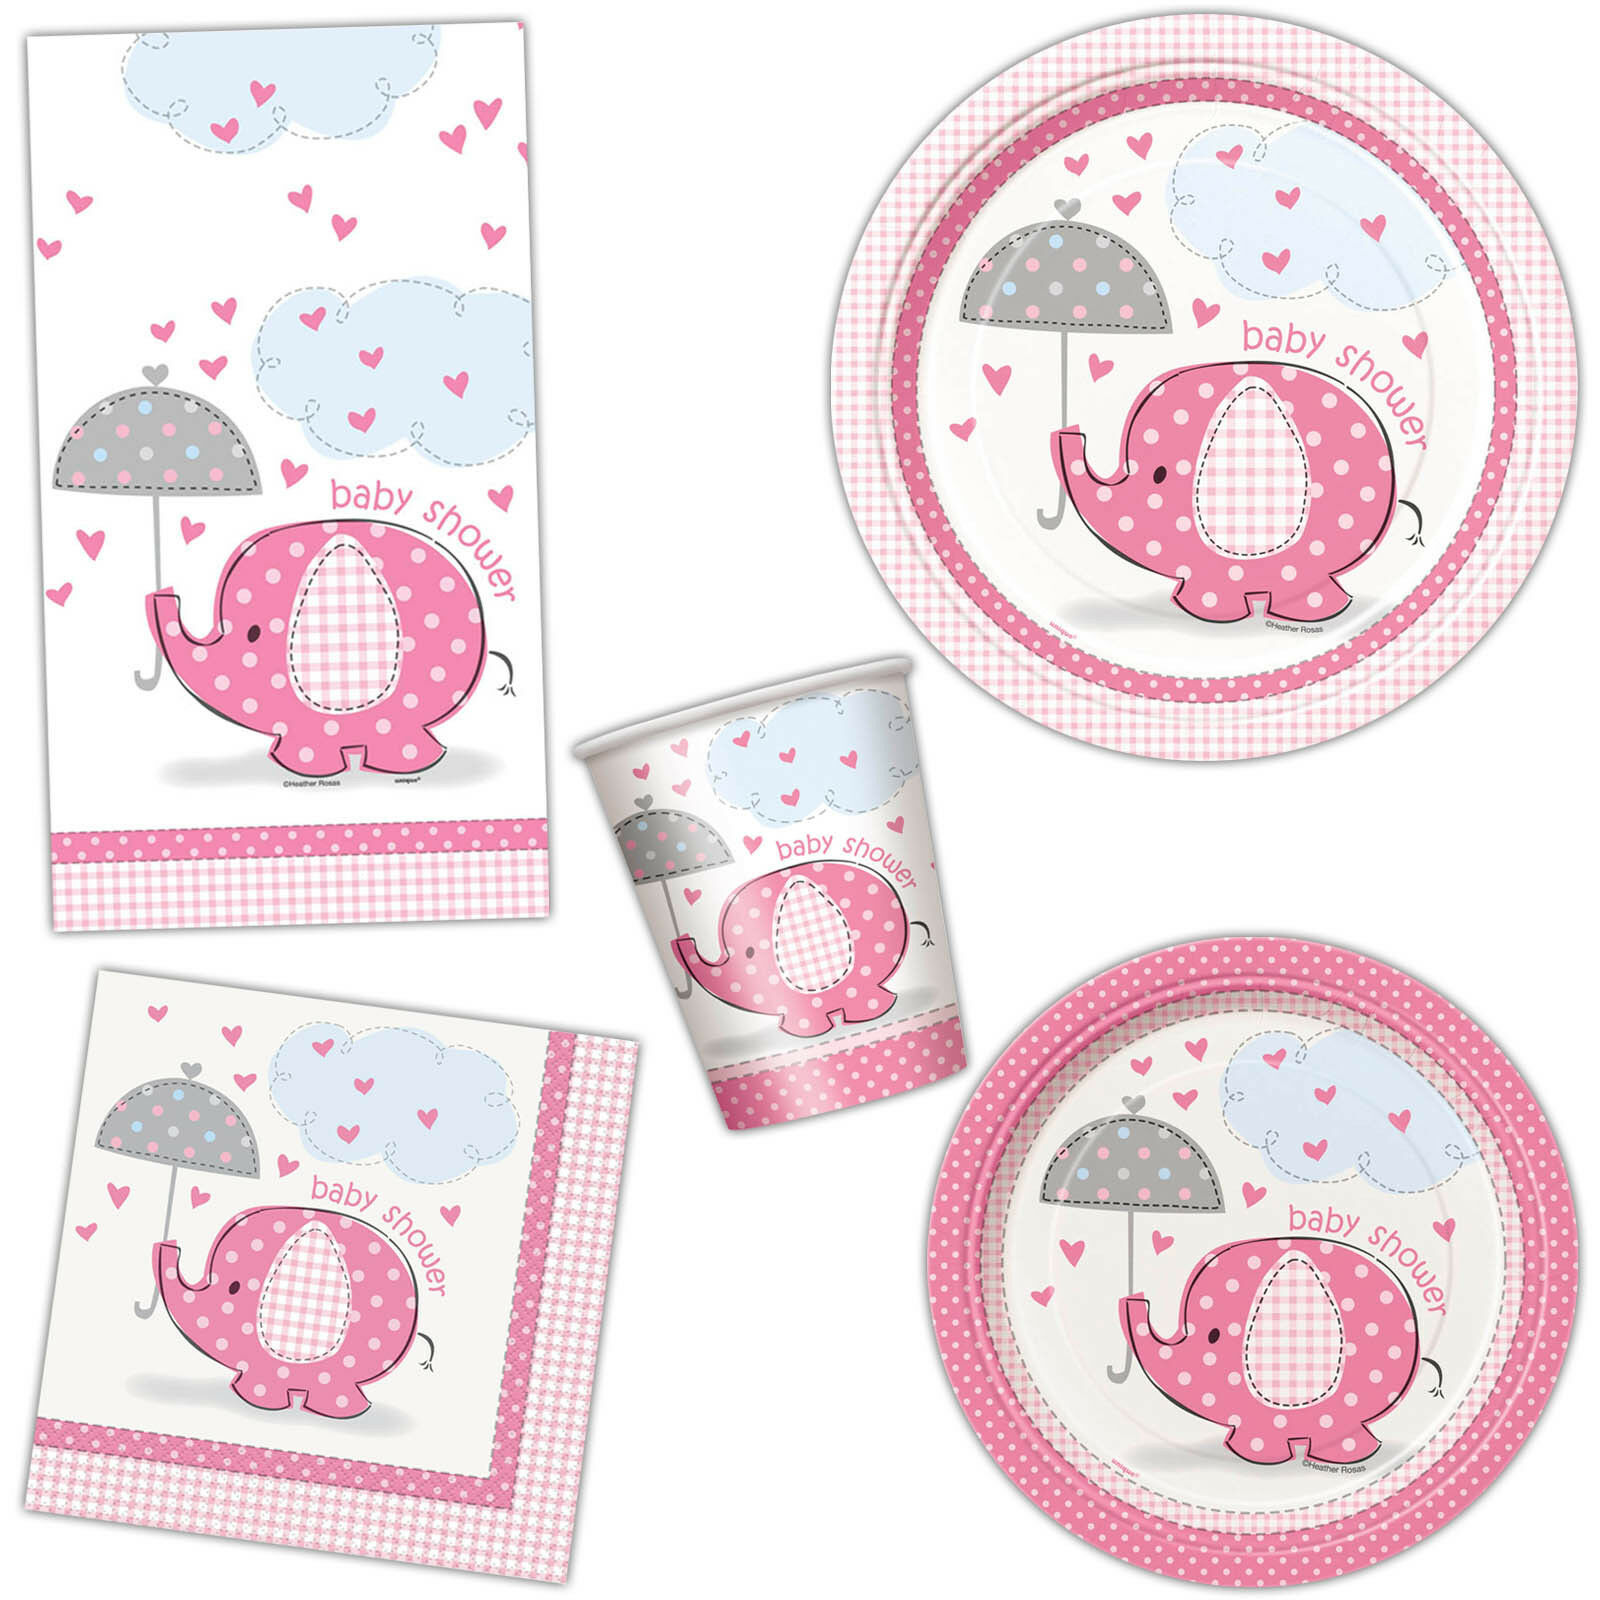 Baby Shower Plate: Girl's PINK ELEPHANT Baby Shower Party Plates Cups Napkins